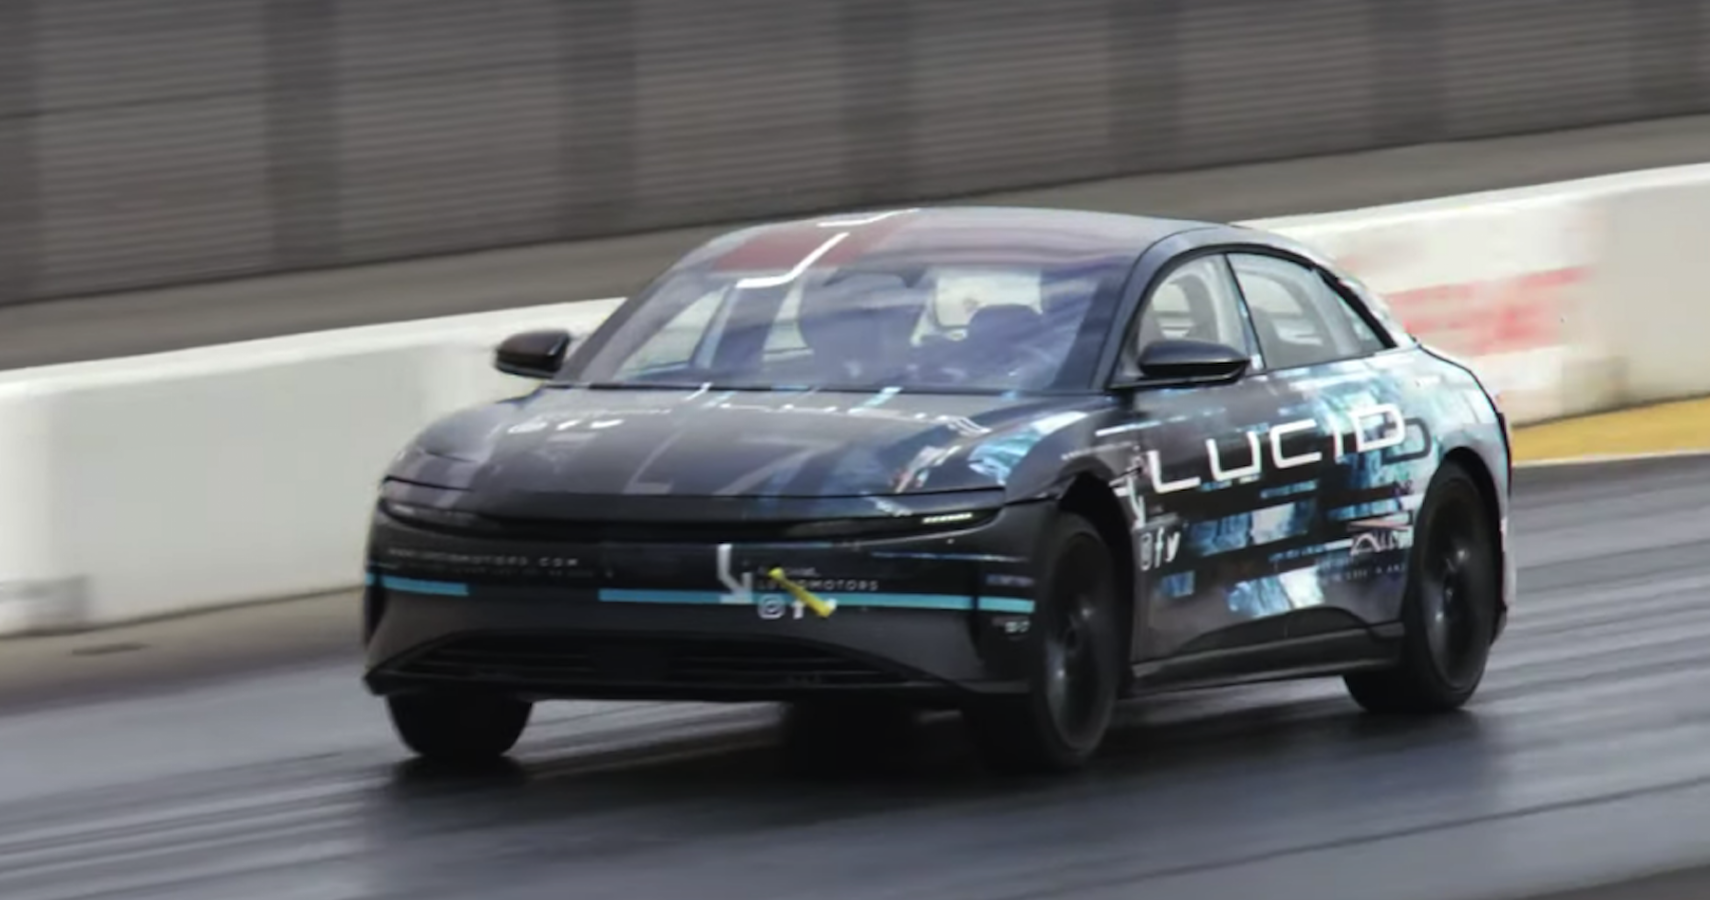 All-Electric Lucid Air Rockets Past Tesla Model S In 9.9 Second Quarter Mile Run